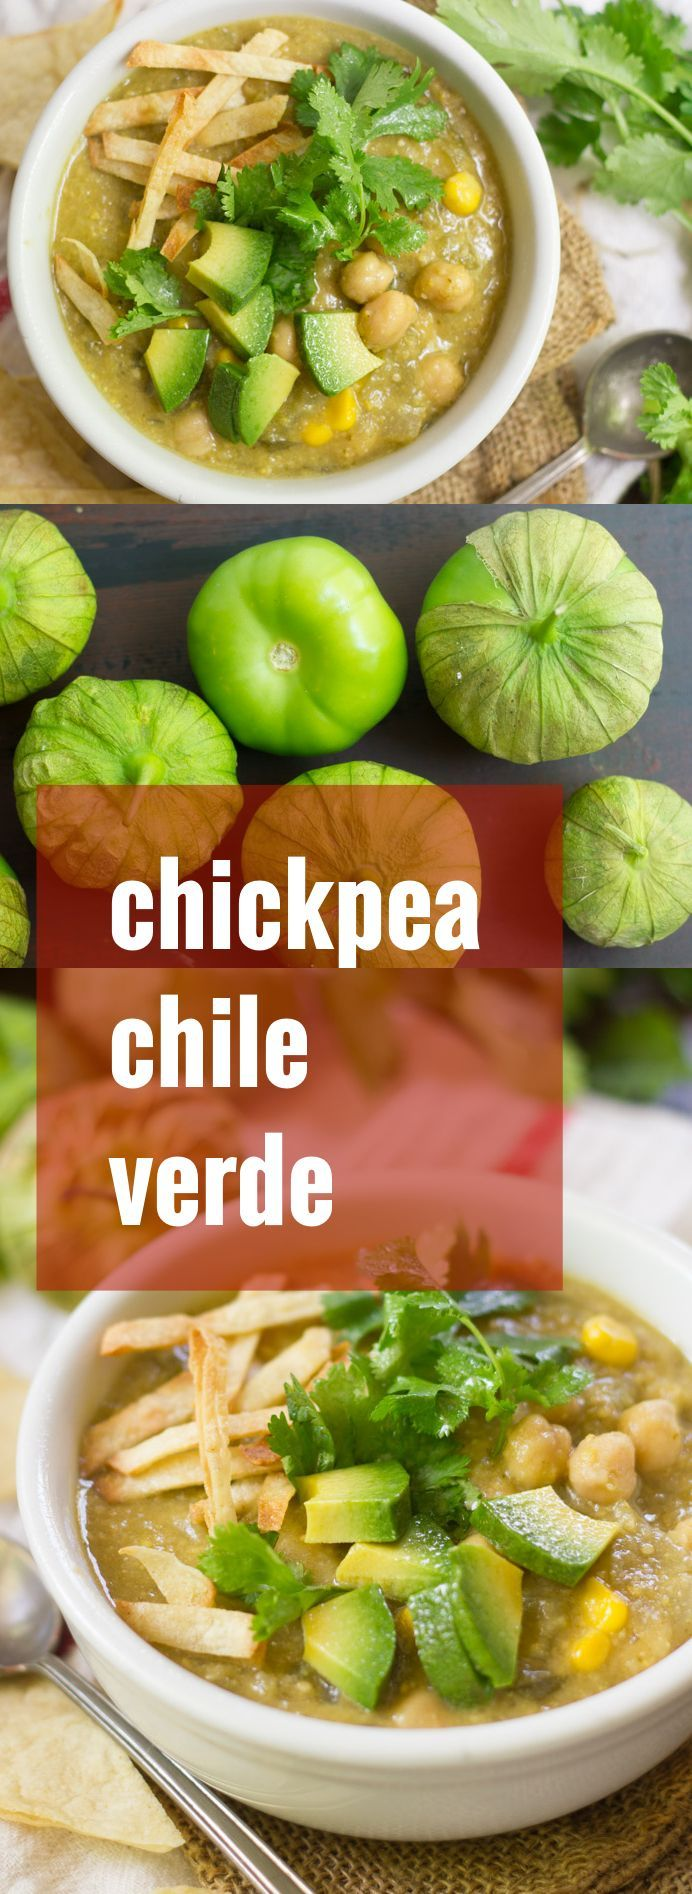 This chile verde is made with chickpeas and tomatillos simmered in a cumin…